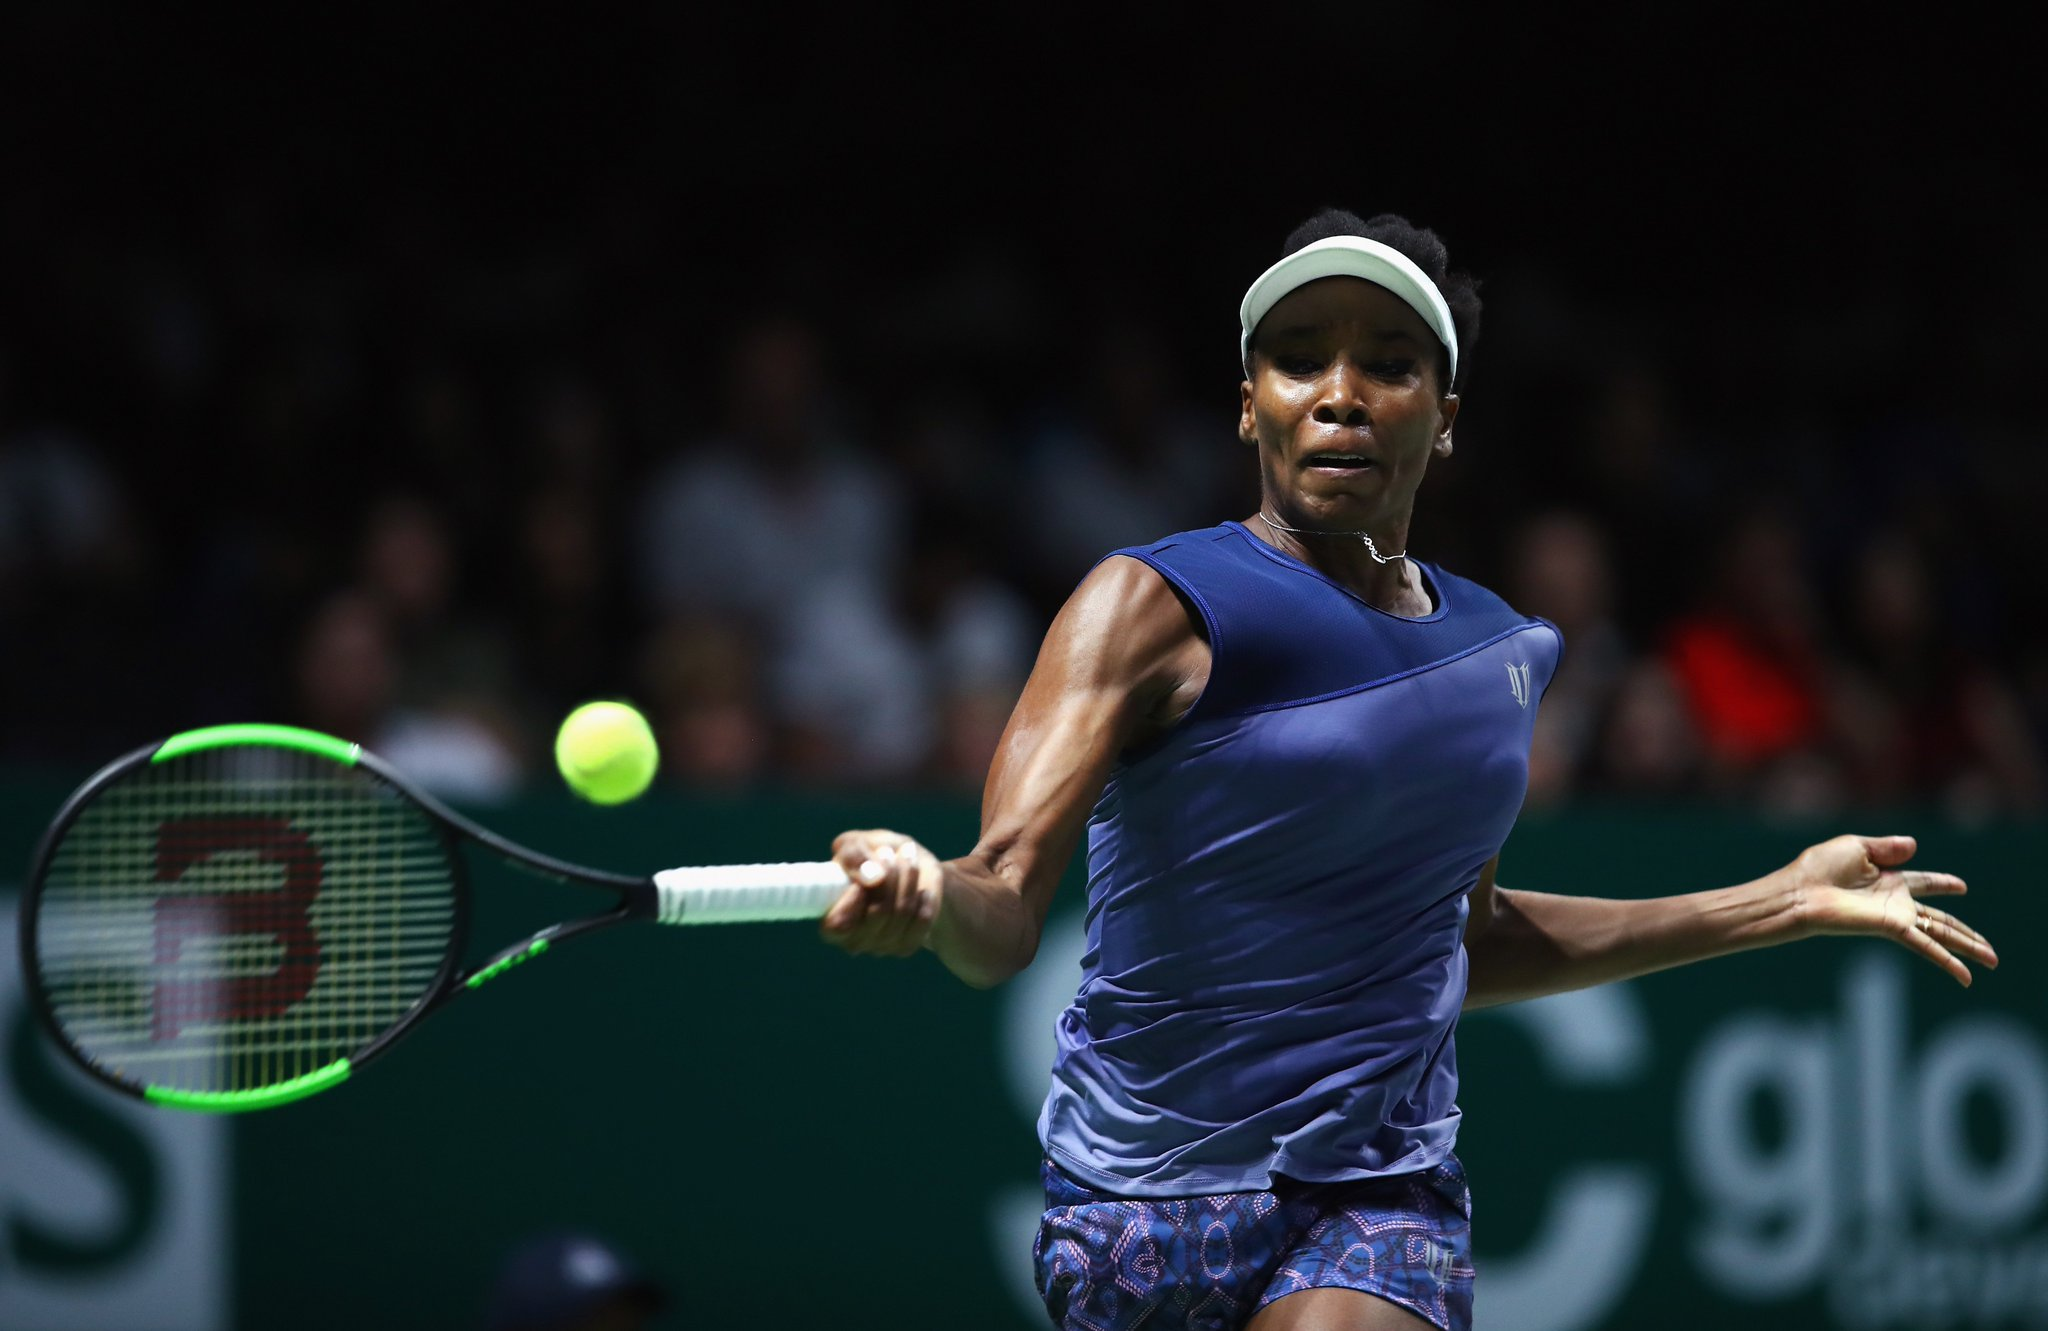 'I have no plans of stopping anytime soon'  @Venuseswilliams sets sights on 2020 Olympics--> https://t.co/YtkSYqLdMV https://t.co/p7mHCdydVt